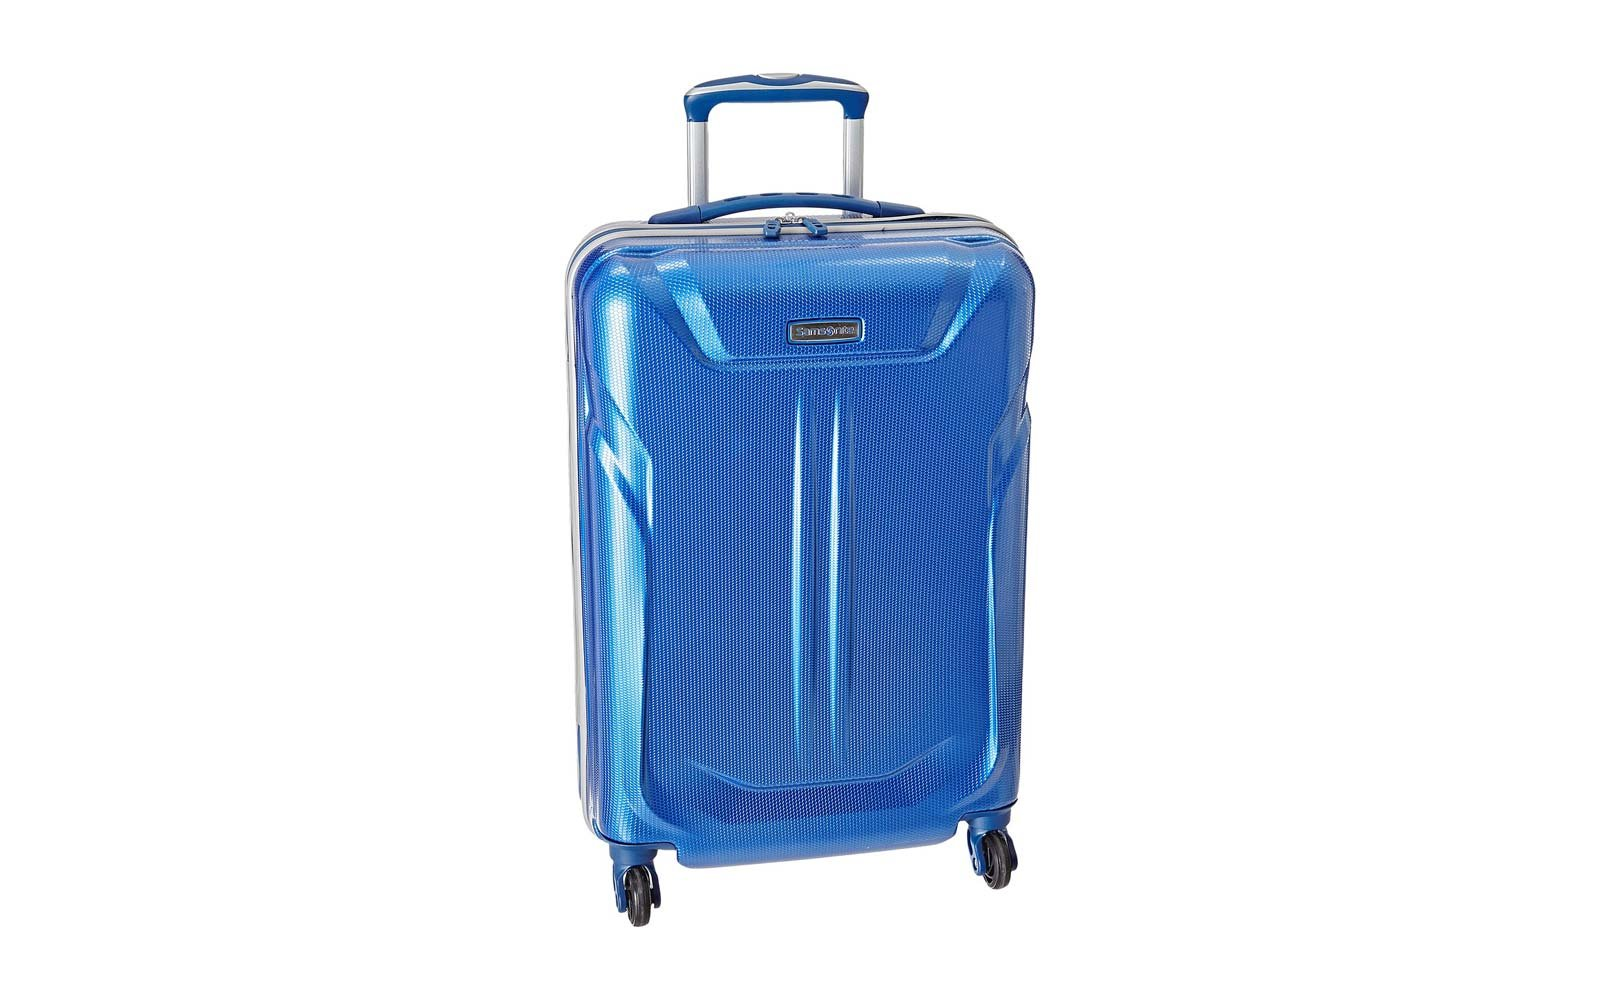 Samsonite LifTwo Hardside